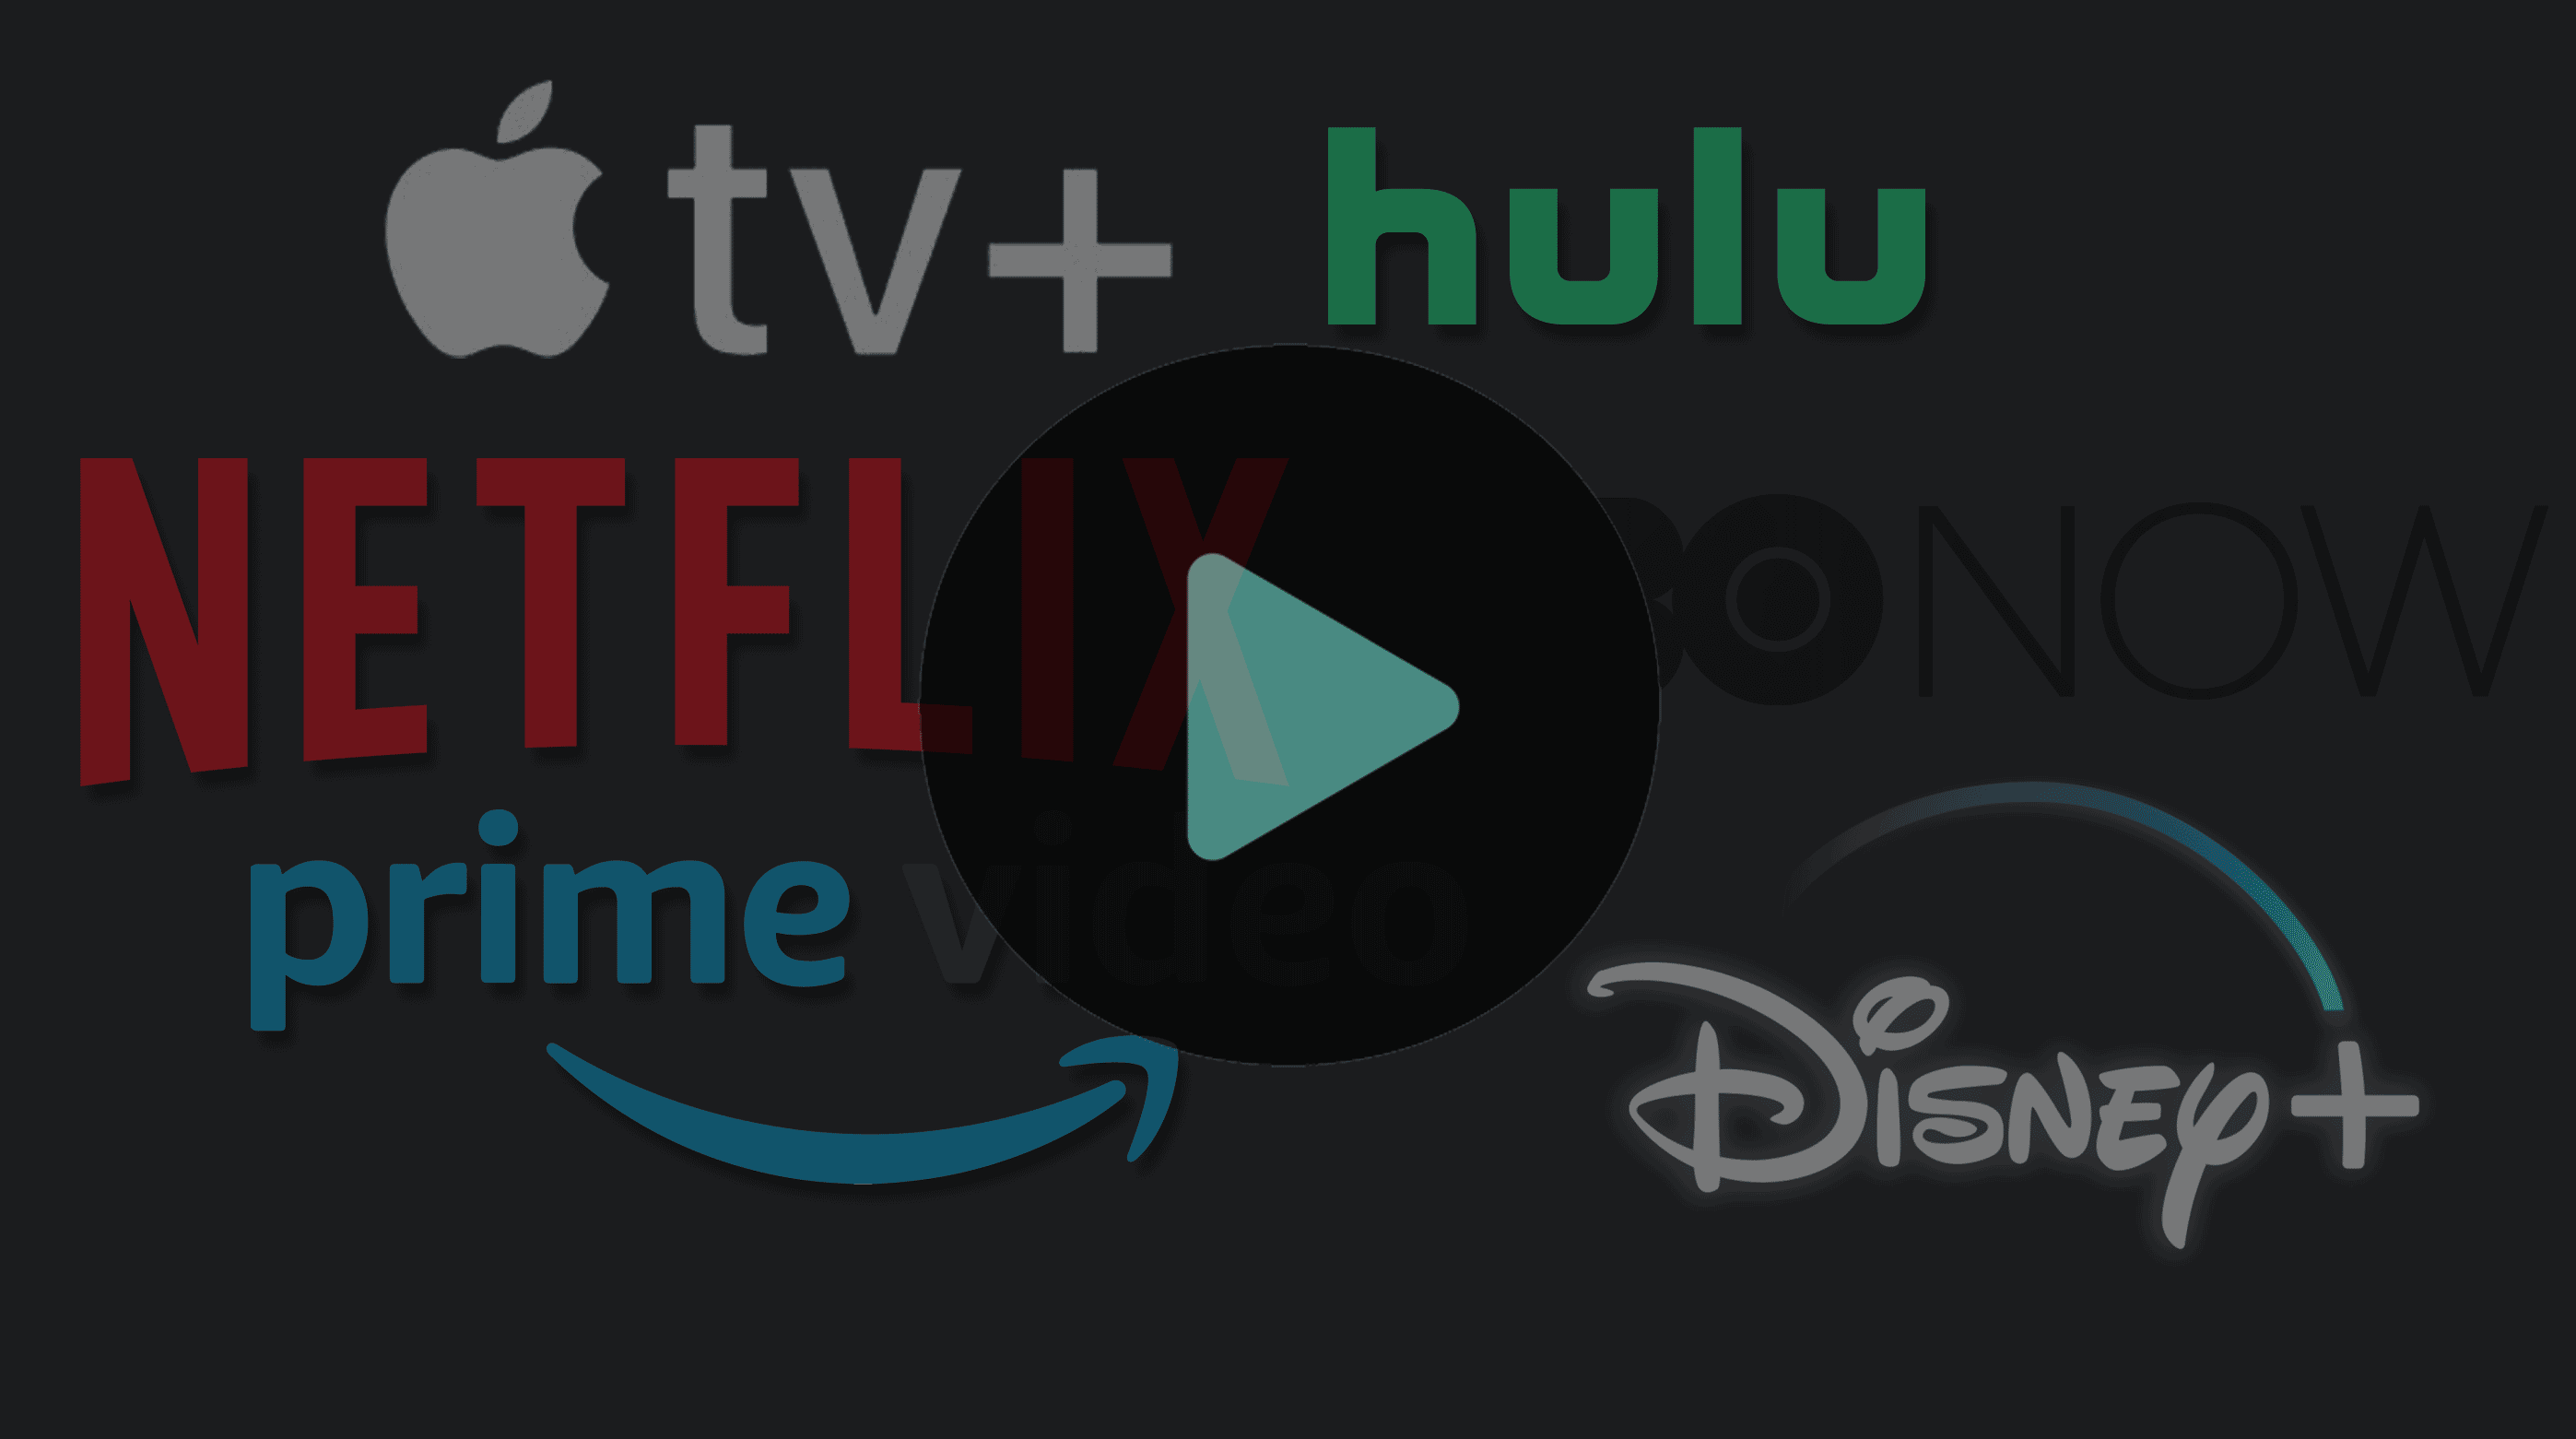 Watchmode - Netflix, Hulu, Apple TV+, Amazon Prime, HBO and more all in one place!